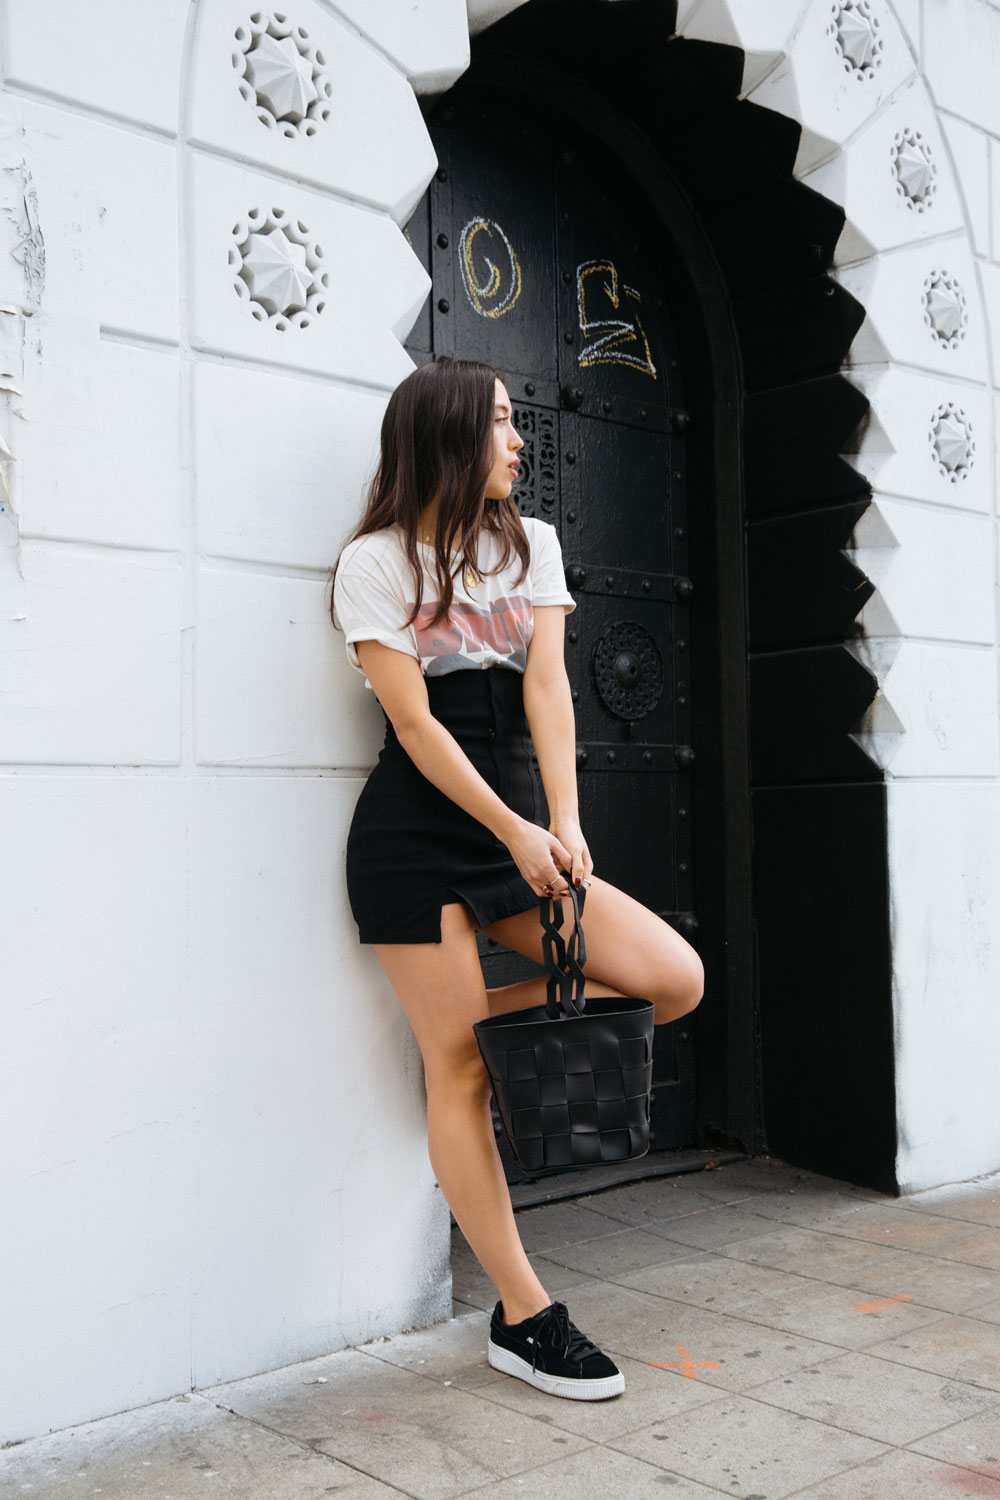 LOVE OR MONEY by Emily Tong wearing Anine Bing vintage shirt high waisted skirt and sneakers